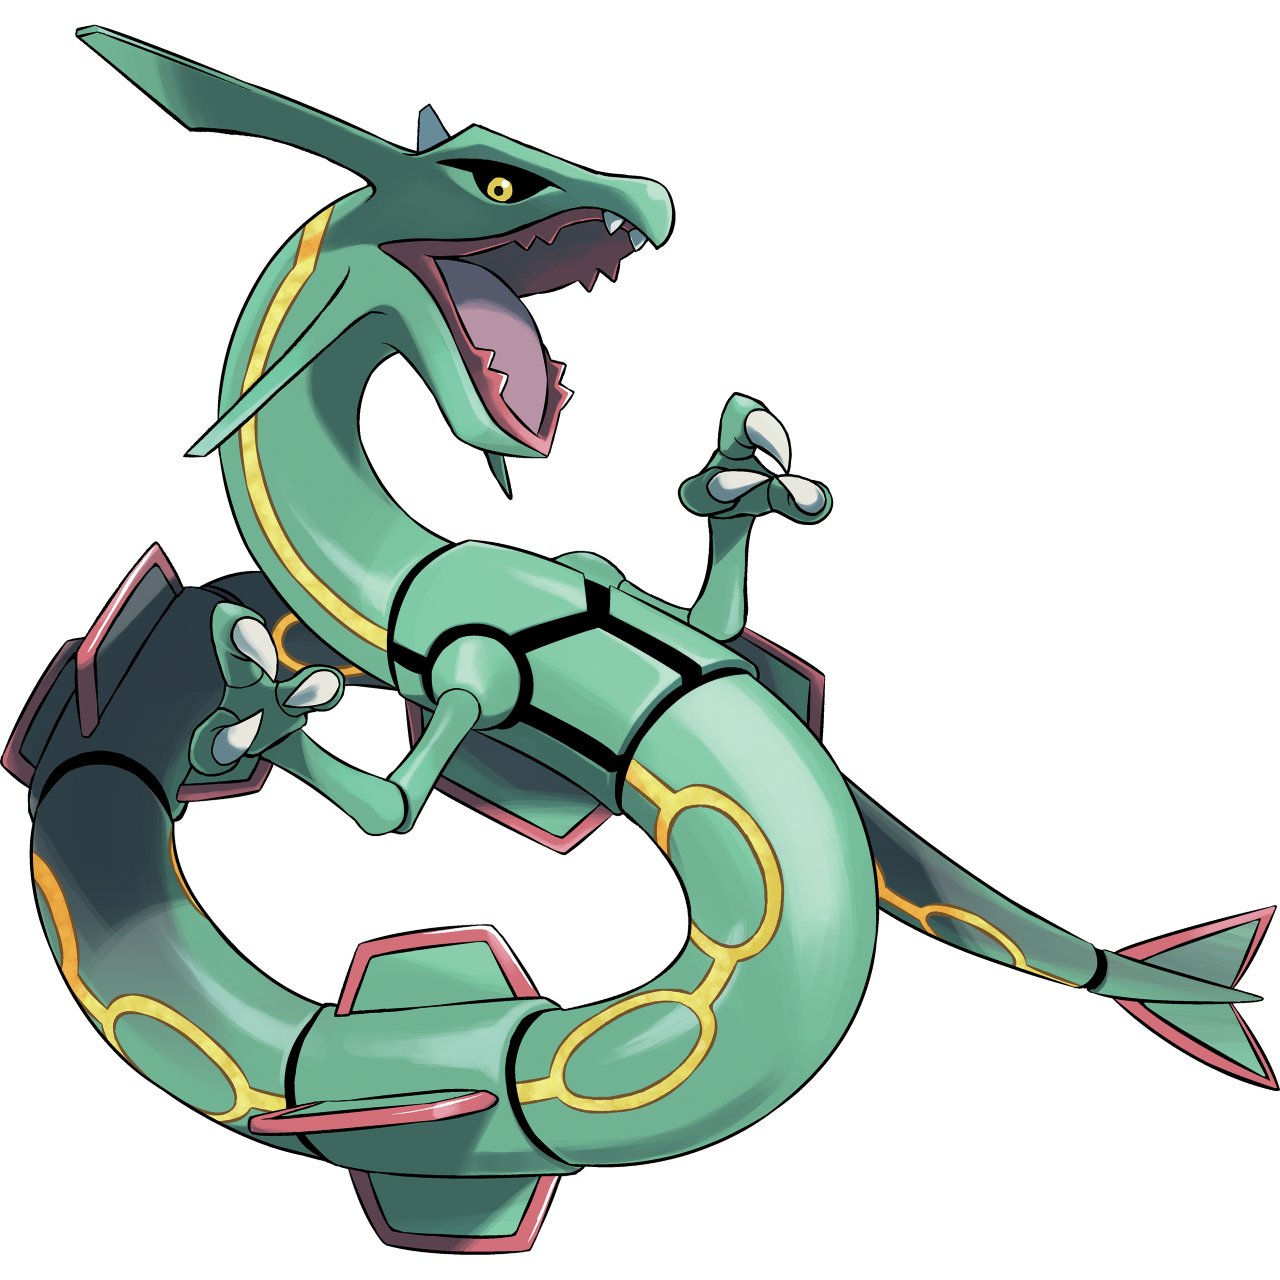 Day 5 Favorite Legendary is Rayquaza! He holds a very special place in my heart. One of the first games I ever fully beat was Emerald and he was on my team when I defeated the Champion! Plus his design is awesome, and with his new Mega form, he's even cooler now!